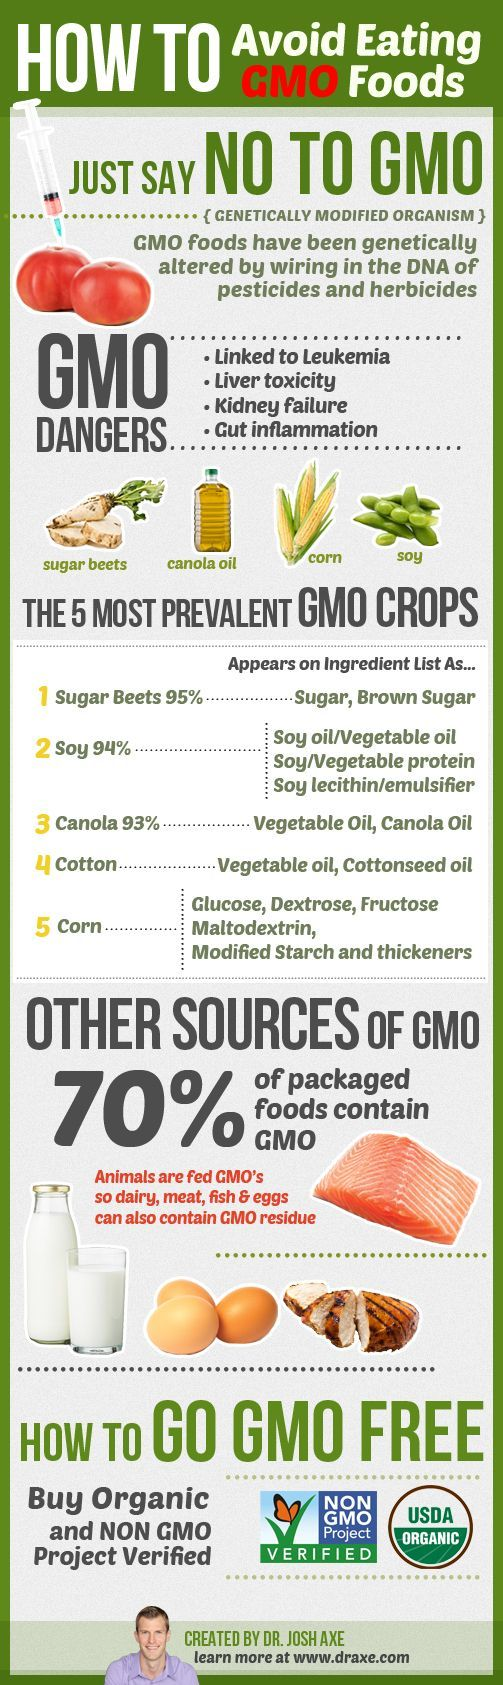 The Comprehensive Guide To Avoiding GMO Foods  The findings on GMOs are mixed, and there's a lot of controversy around whether or not GMOs are horrible for you and the planet, or an innocuous tool to get more out of the crops we grow. For me personally, I'm a traditionalist when it comes to food. I don't know that I support an …